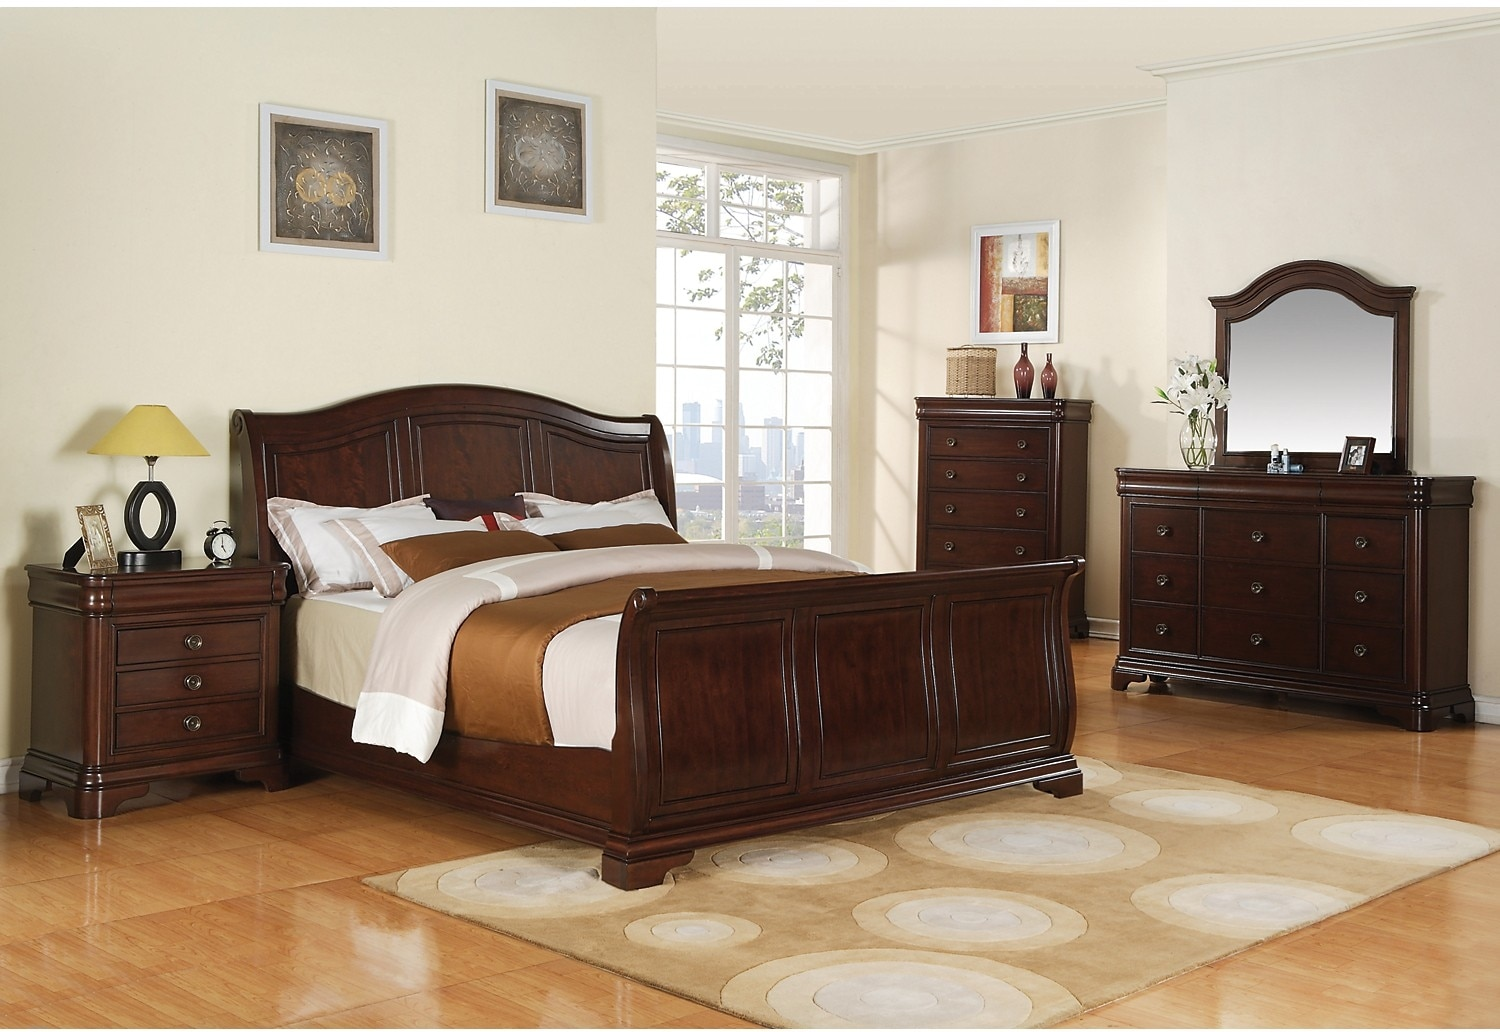 Cameron 8-Piece King Bedroom Package - Merlot